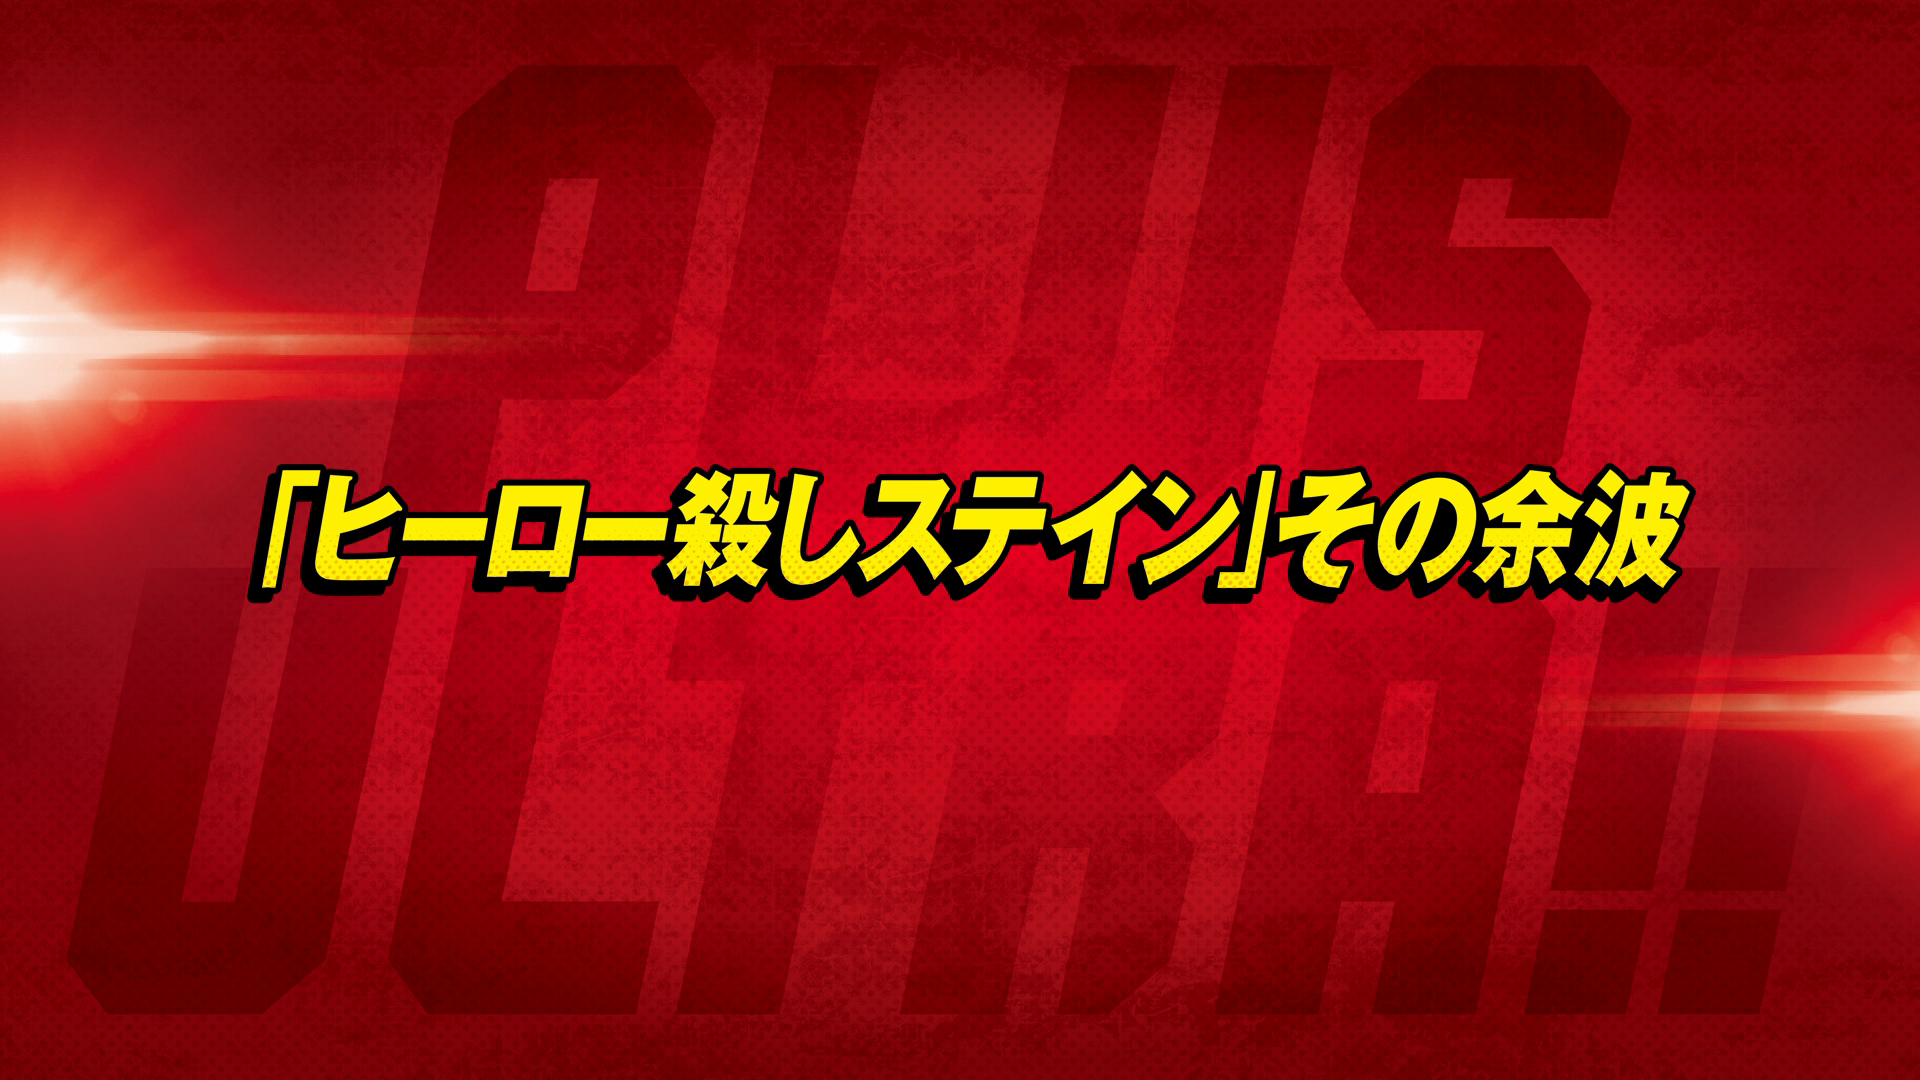 Episode 31 title card.png